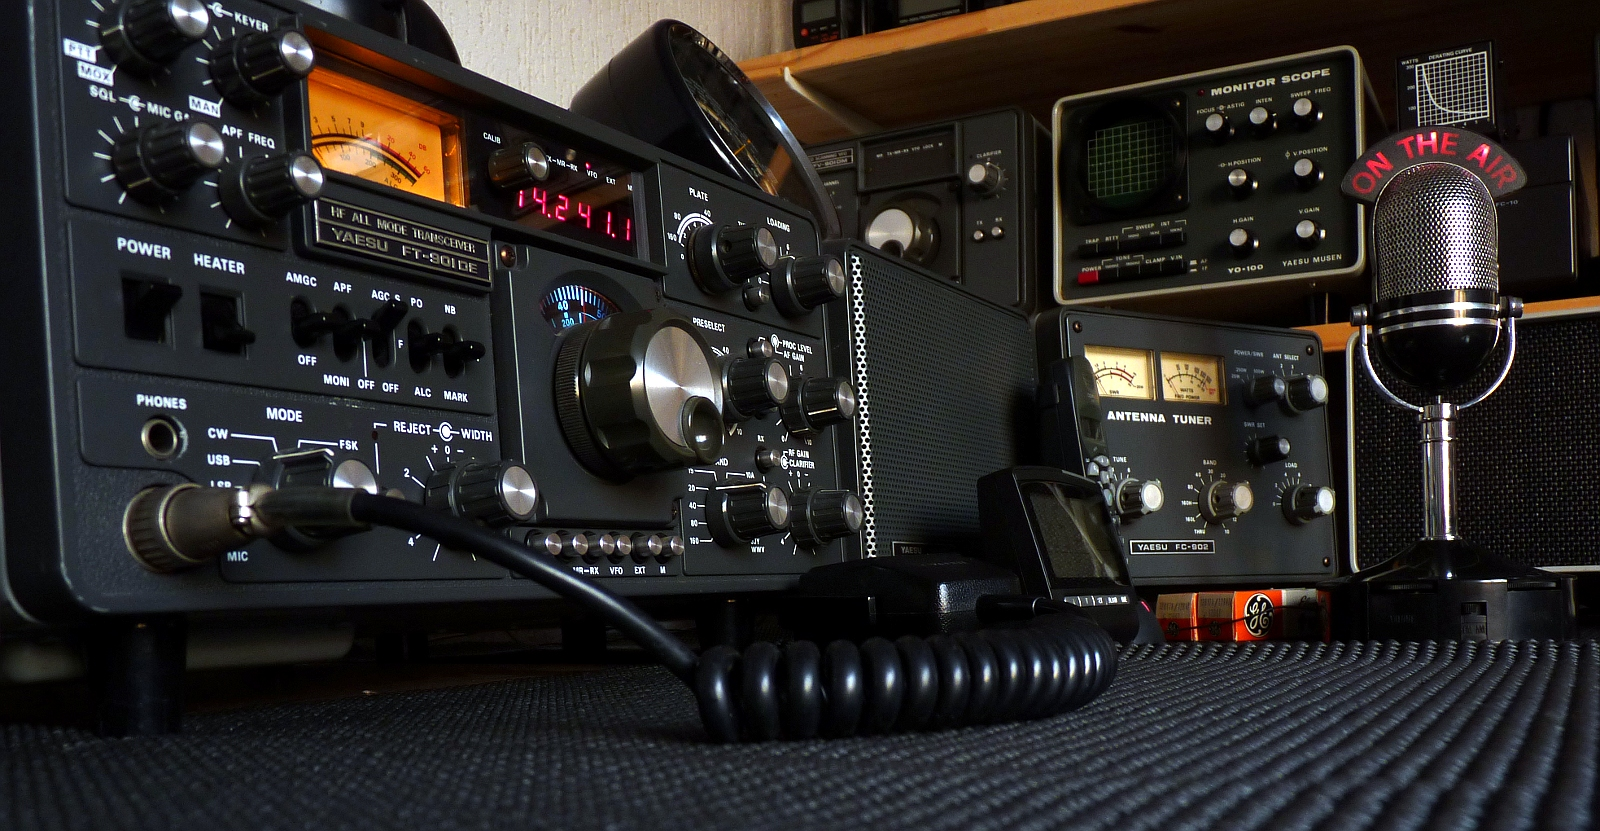 Practical Survival Radio Communications – Part 2, by G.H.